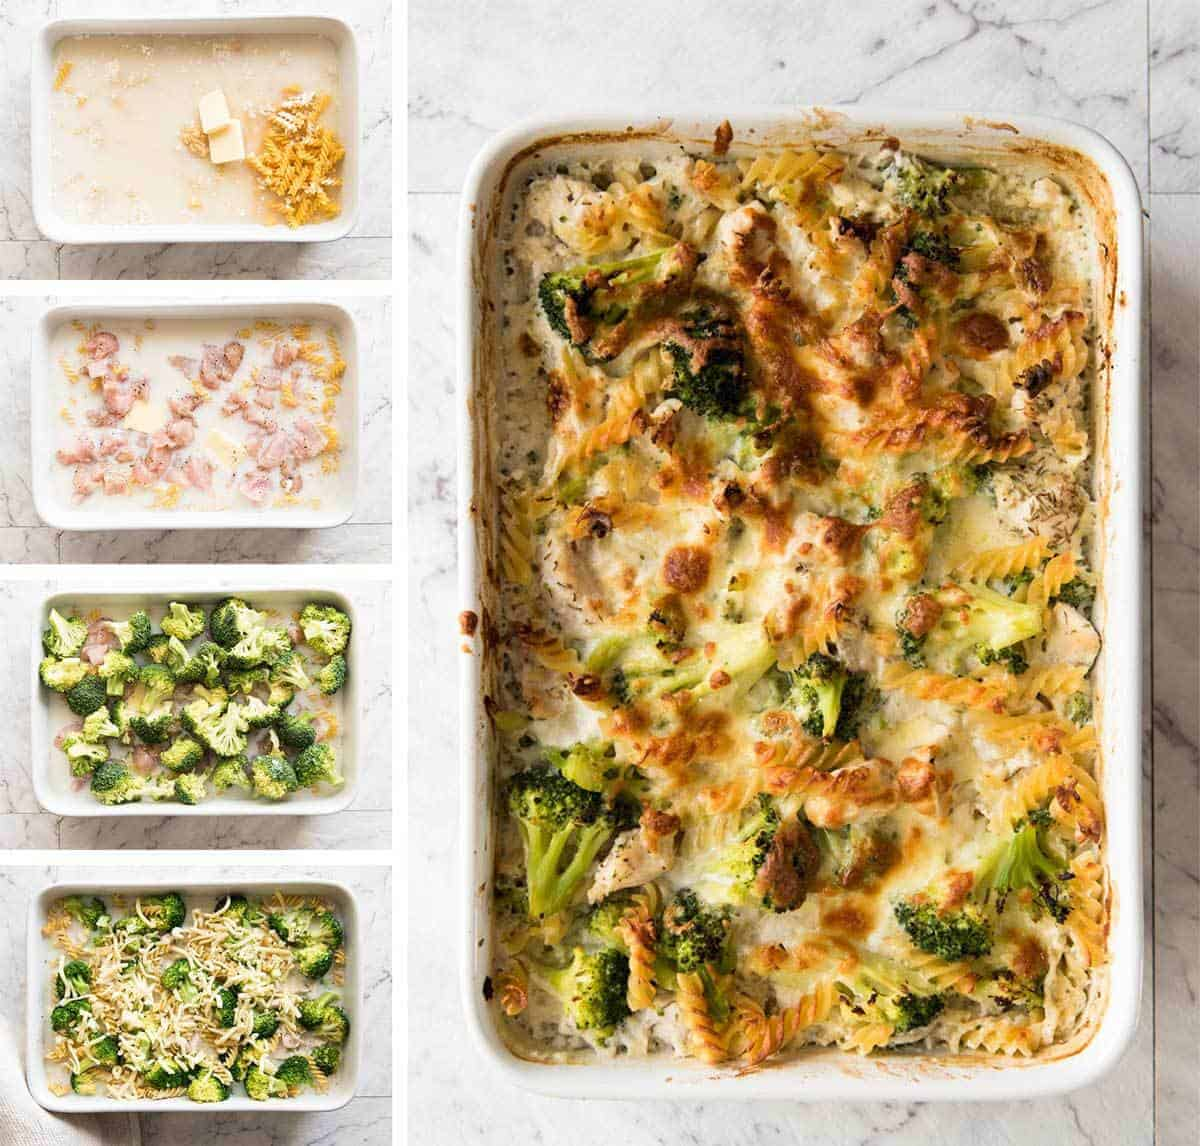 Ultra Lazy Healthy Chicken And Broccoli Pasta Bake Recipetin Eats